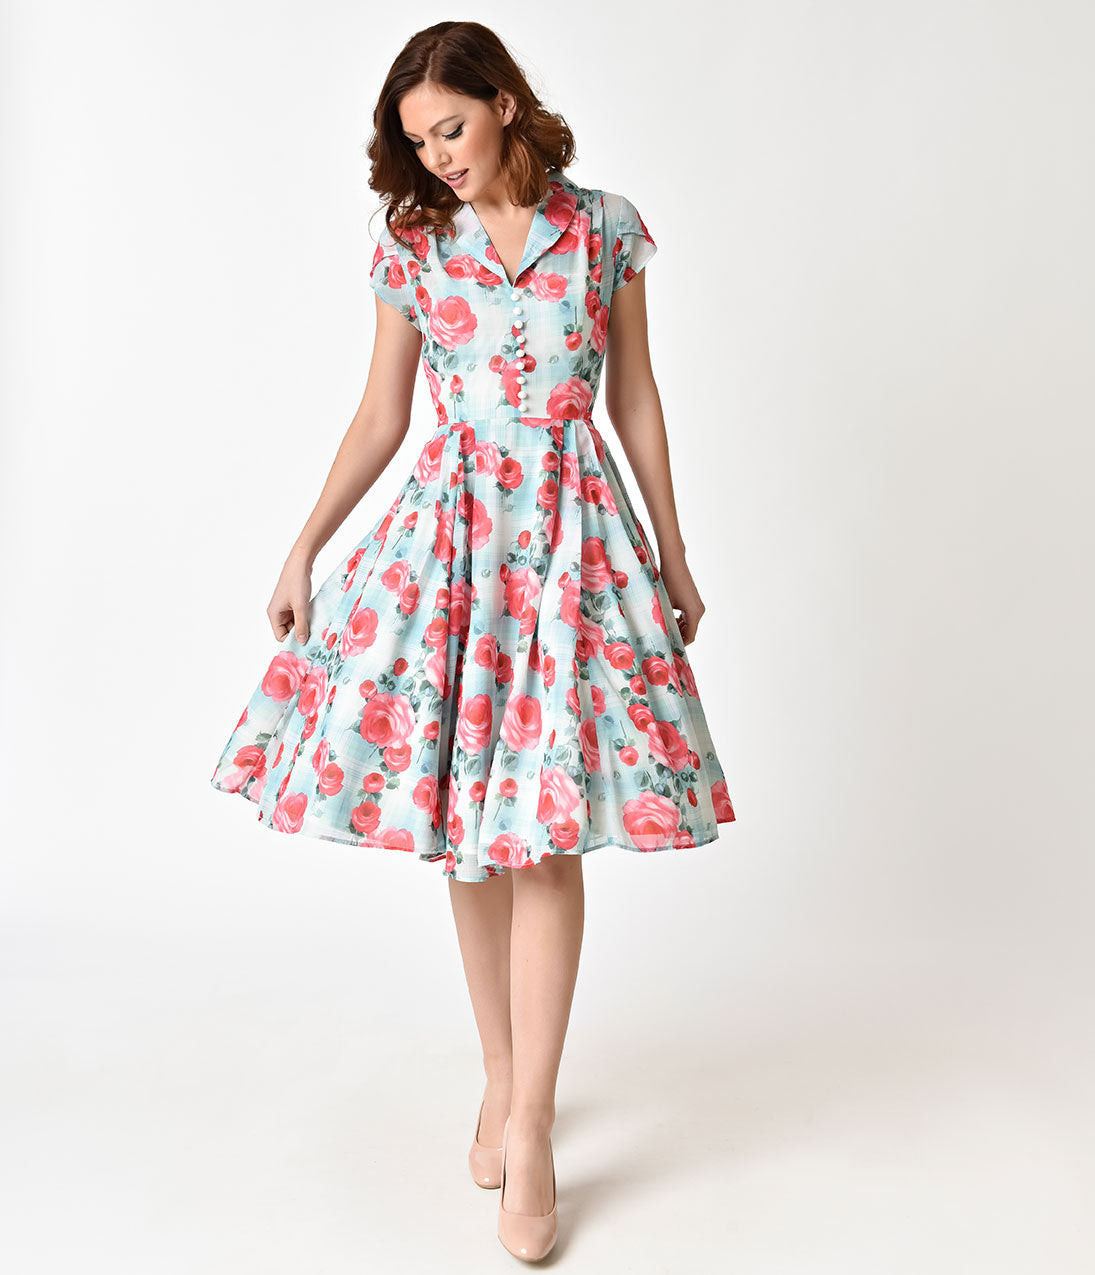 500 Vintage Style Dresses for Sale Hell Bunny 1950S Mint Floral Cap Sleeve Suzannah Chiffon Swing Dress $92.00 AT vintagedancer.com